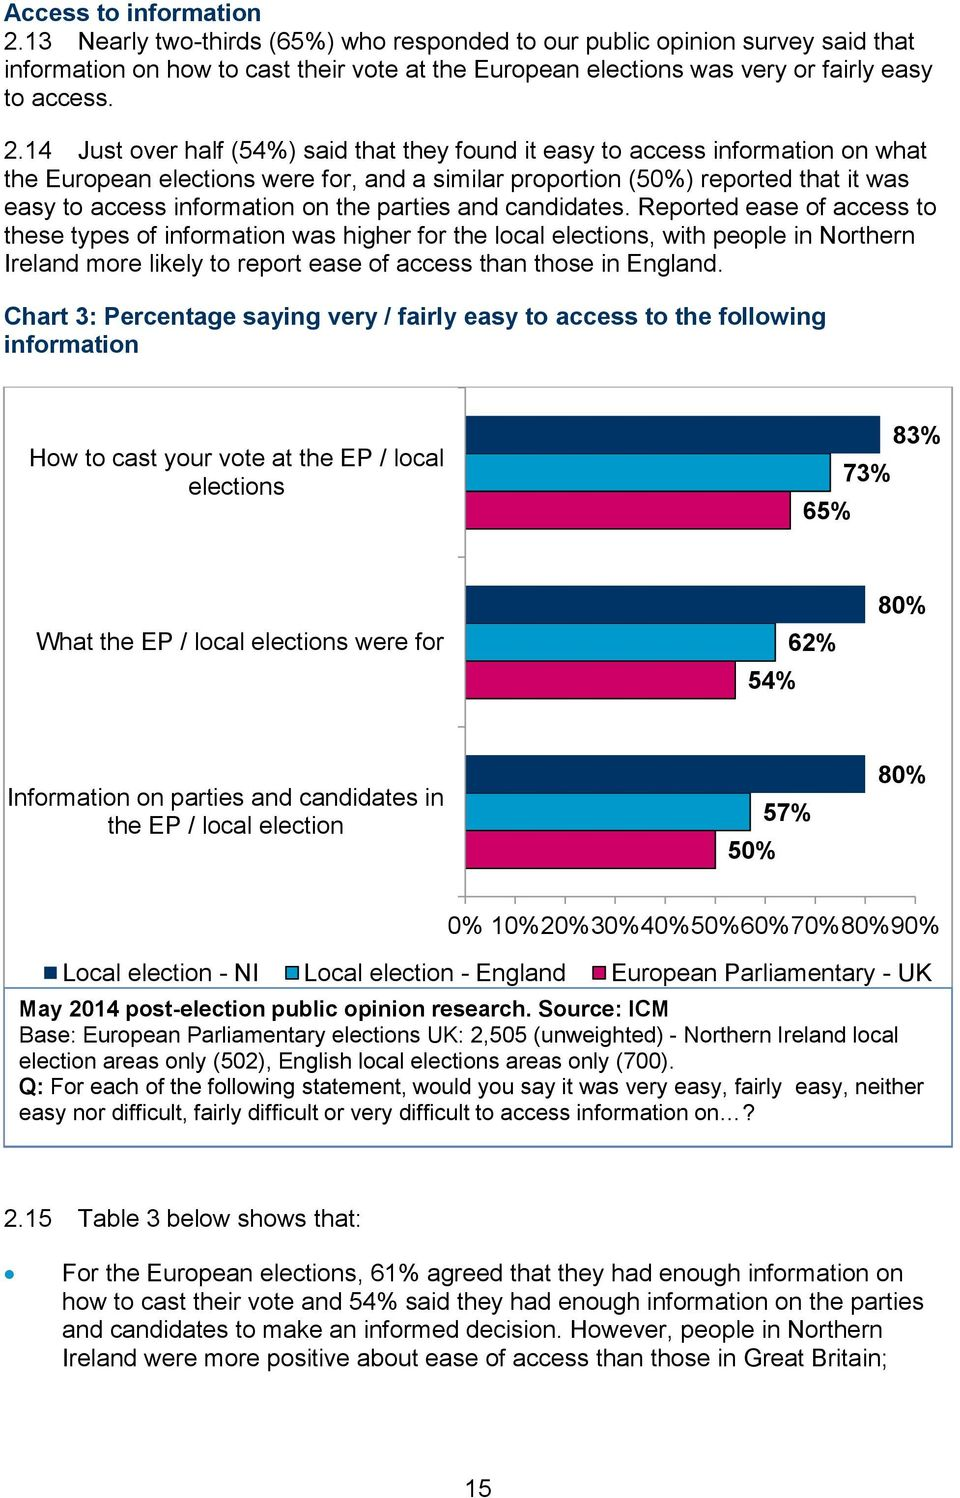 14 Just over half (54%) said that they found it easy to access information on what the European elections were for, and a similar proportion (50%) reported that it was easy to access information on